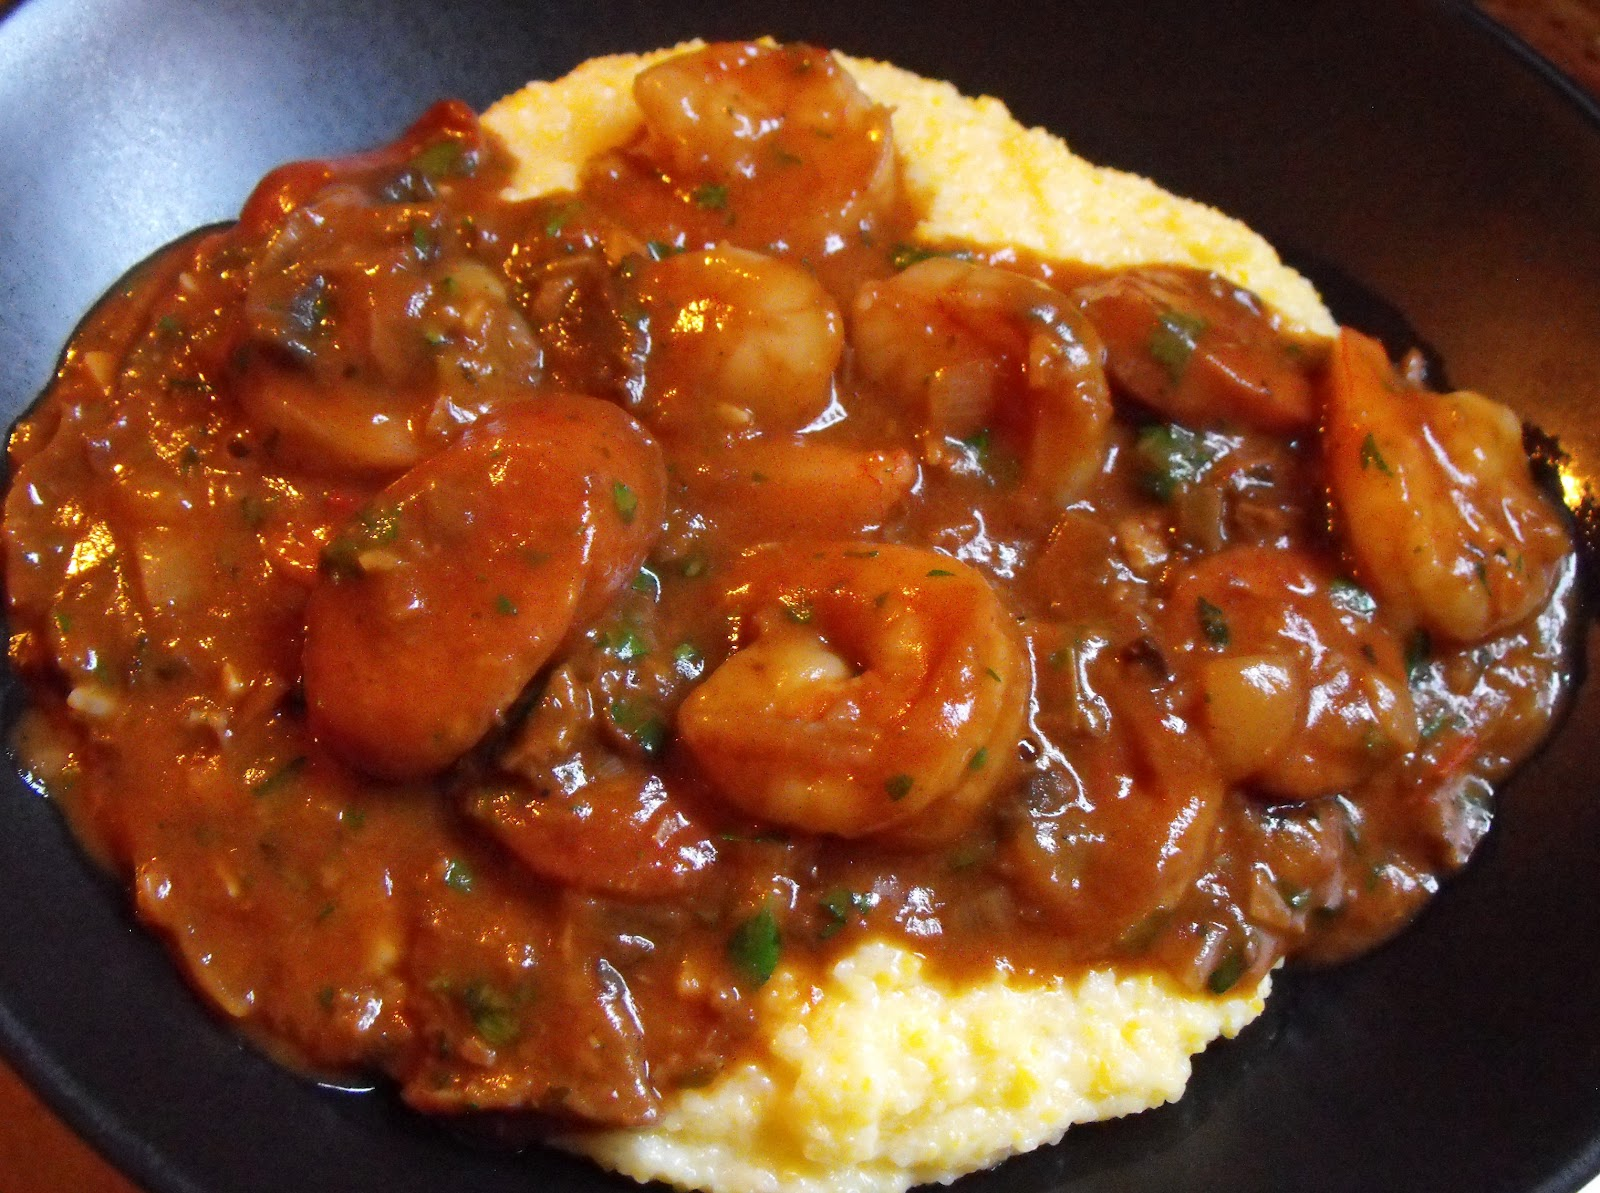 GrowCookPreserve: Shrimp and Grits with Andouille